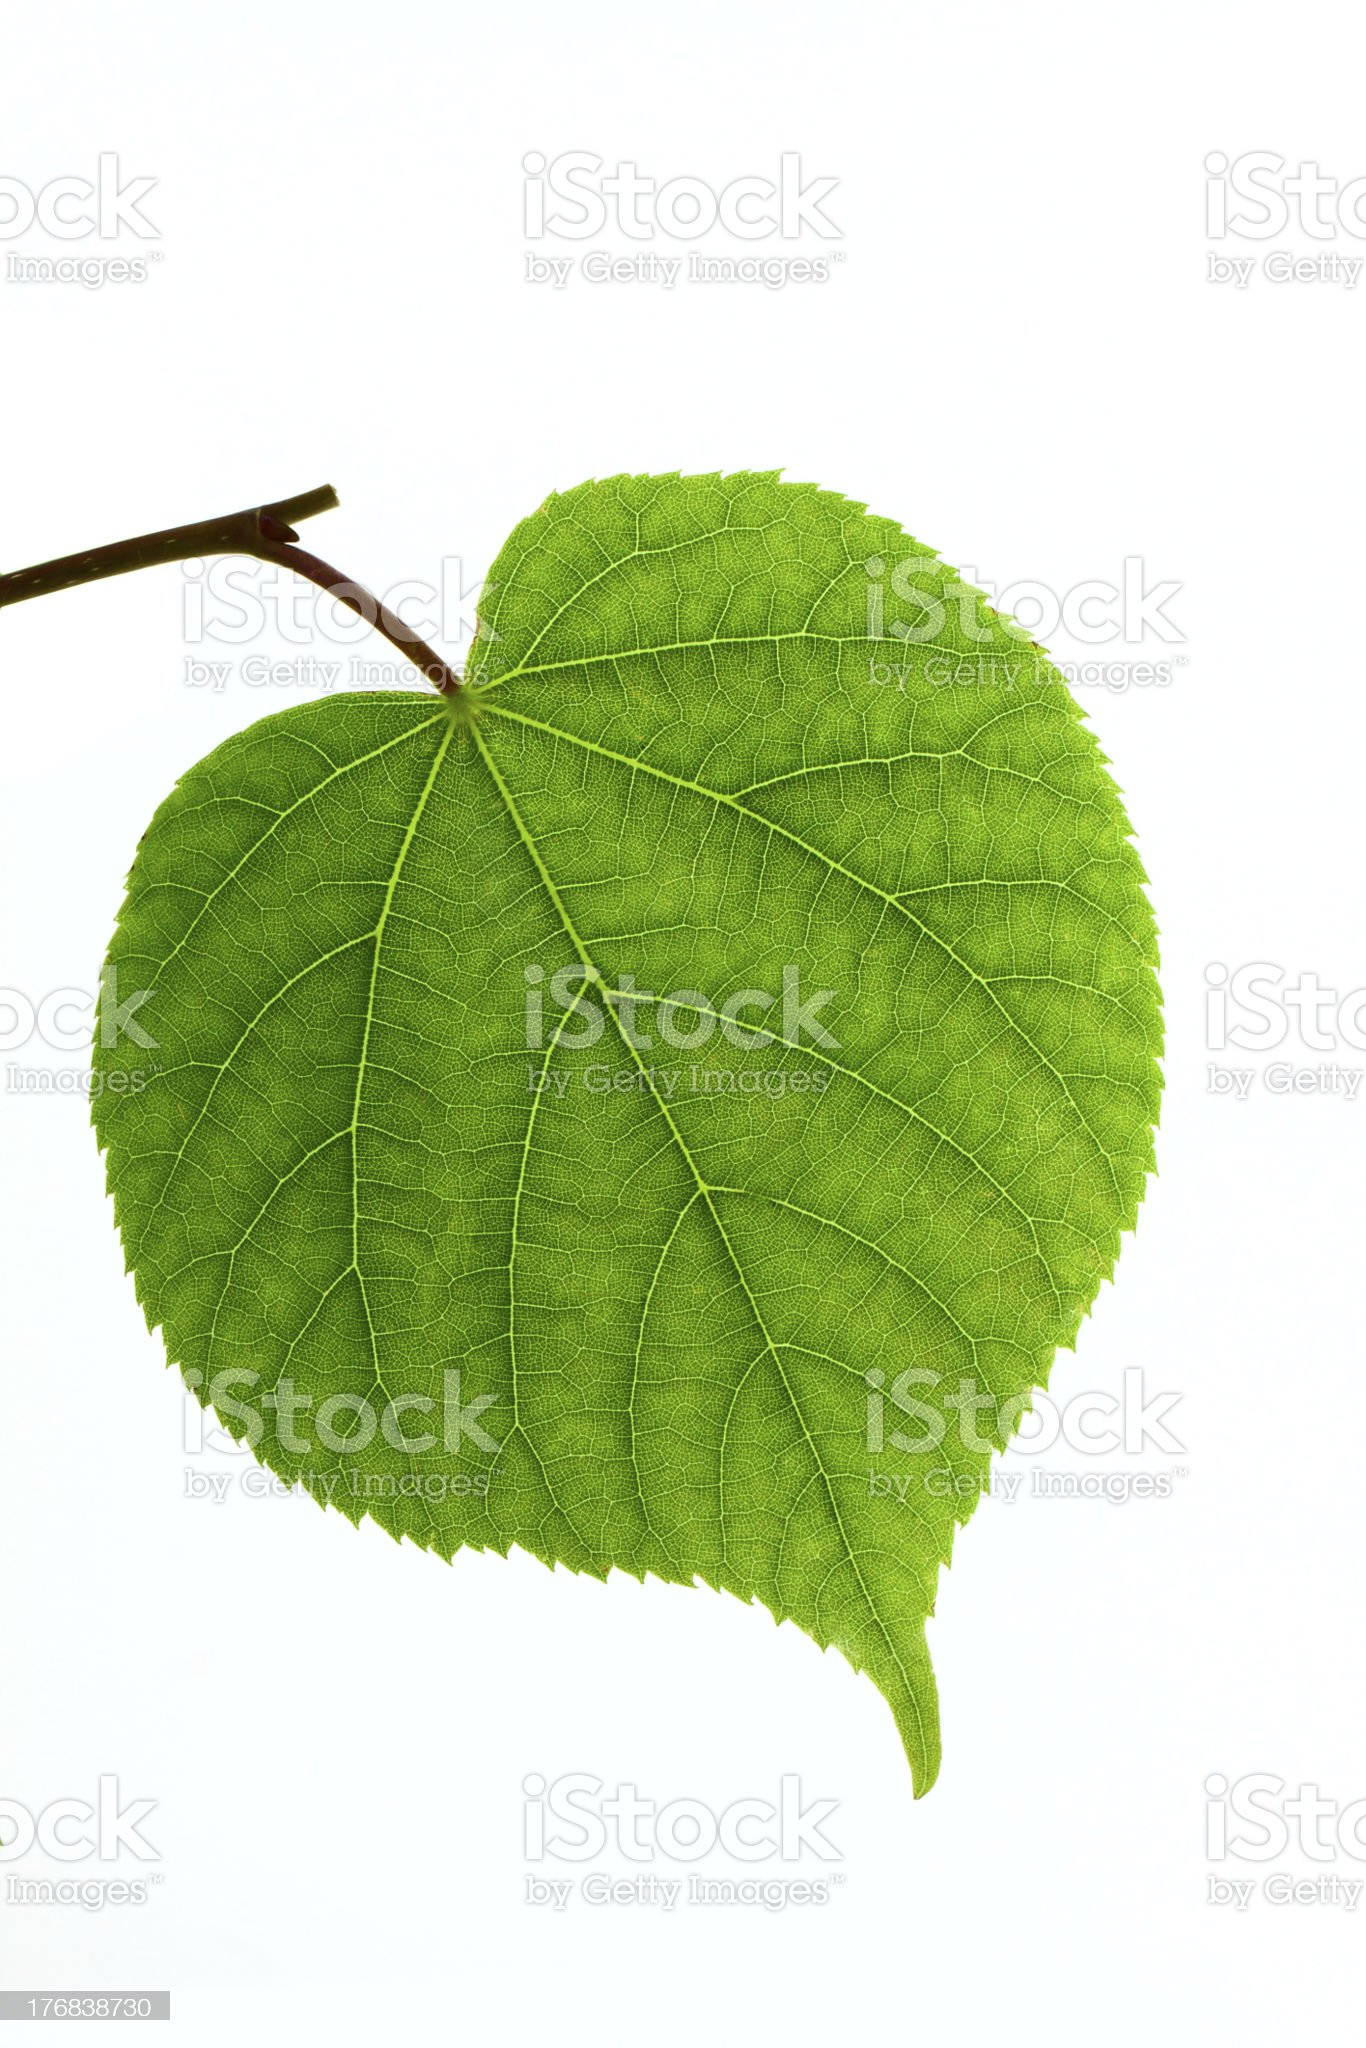 Linden leaf isolated royalty-free stock photo